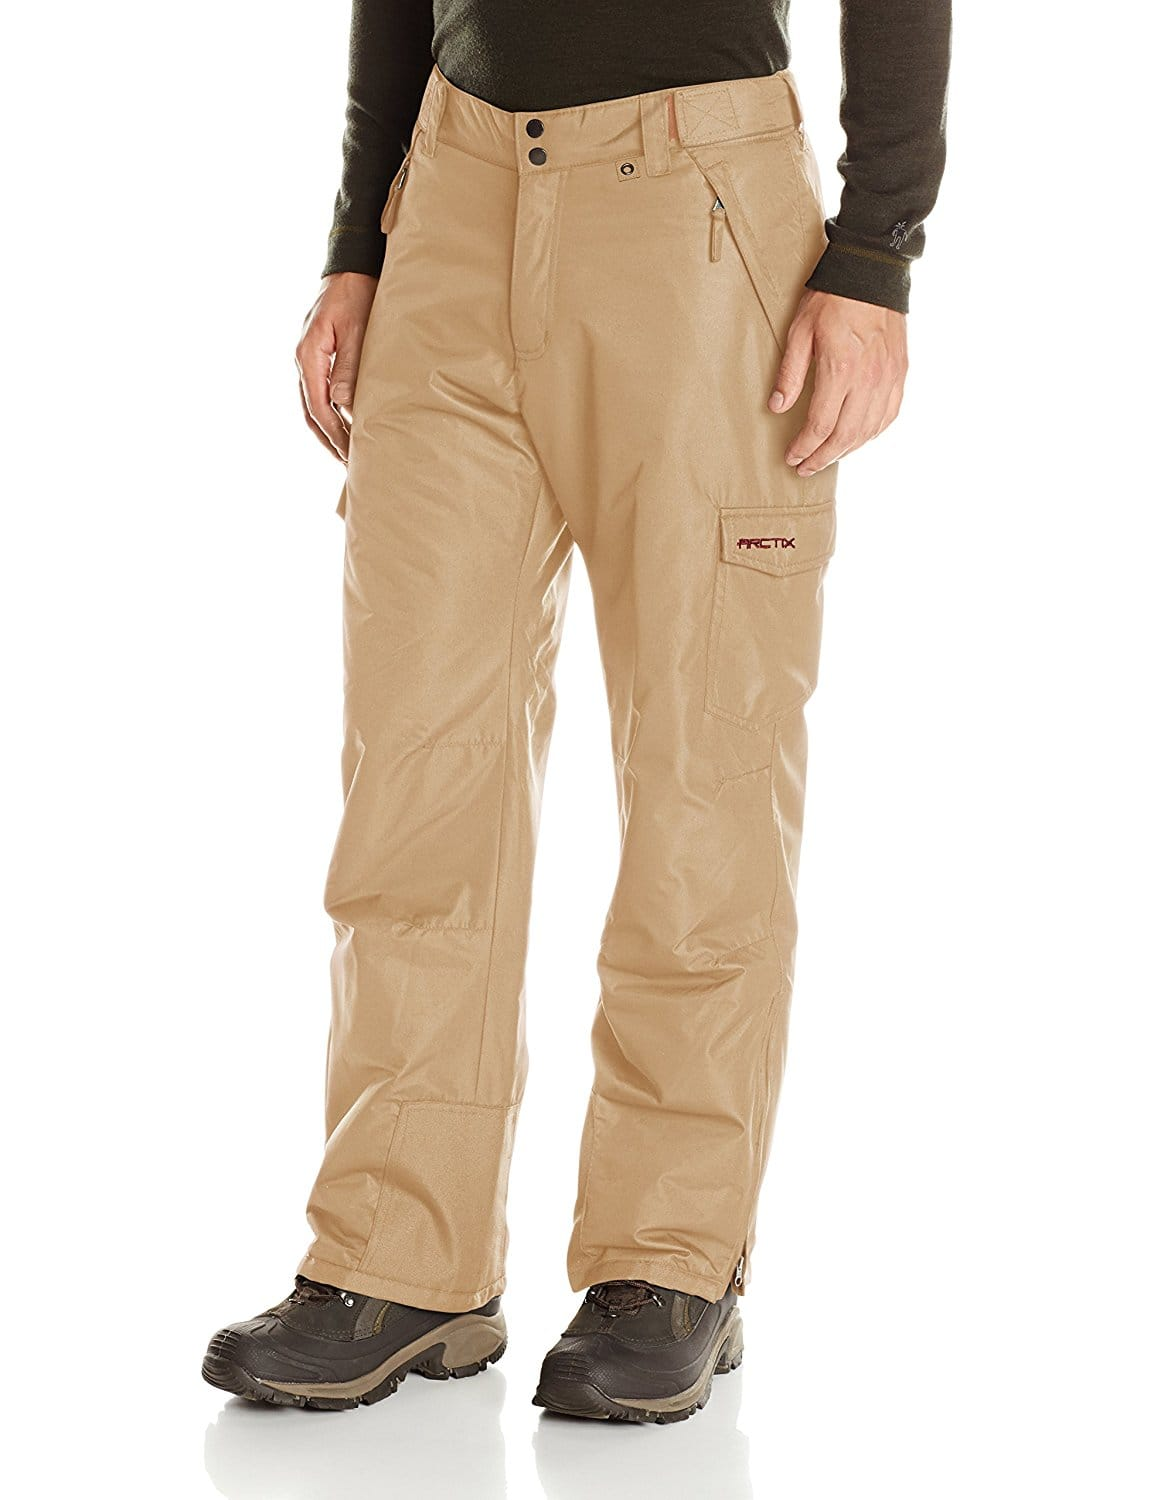 Arctix Men's Snow Sports Cargo Pants - Size Medium (for biggest discount) -  Color Khaki - Amazon  - Add on Item - $6.41